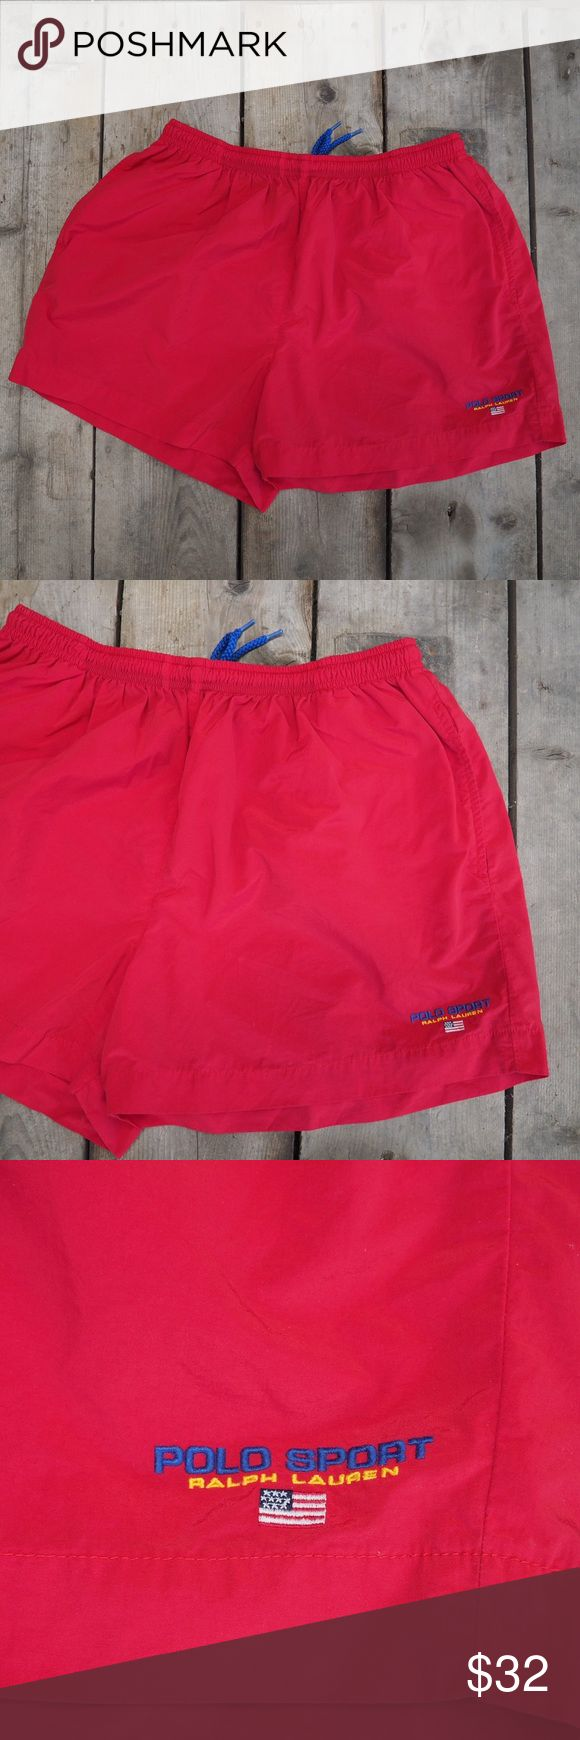 Vintage Polo Sport Ralph Lauren Shorts 90's vintage Polo Sport by Ralph Lauren mid thigh shorts/swim trunks. Size XL. Item is in excellent Pre-Owned vintage condition with no stains or tears. Please message with any questions. Thanks! Polo by Ralph Lauren Shorts